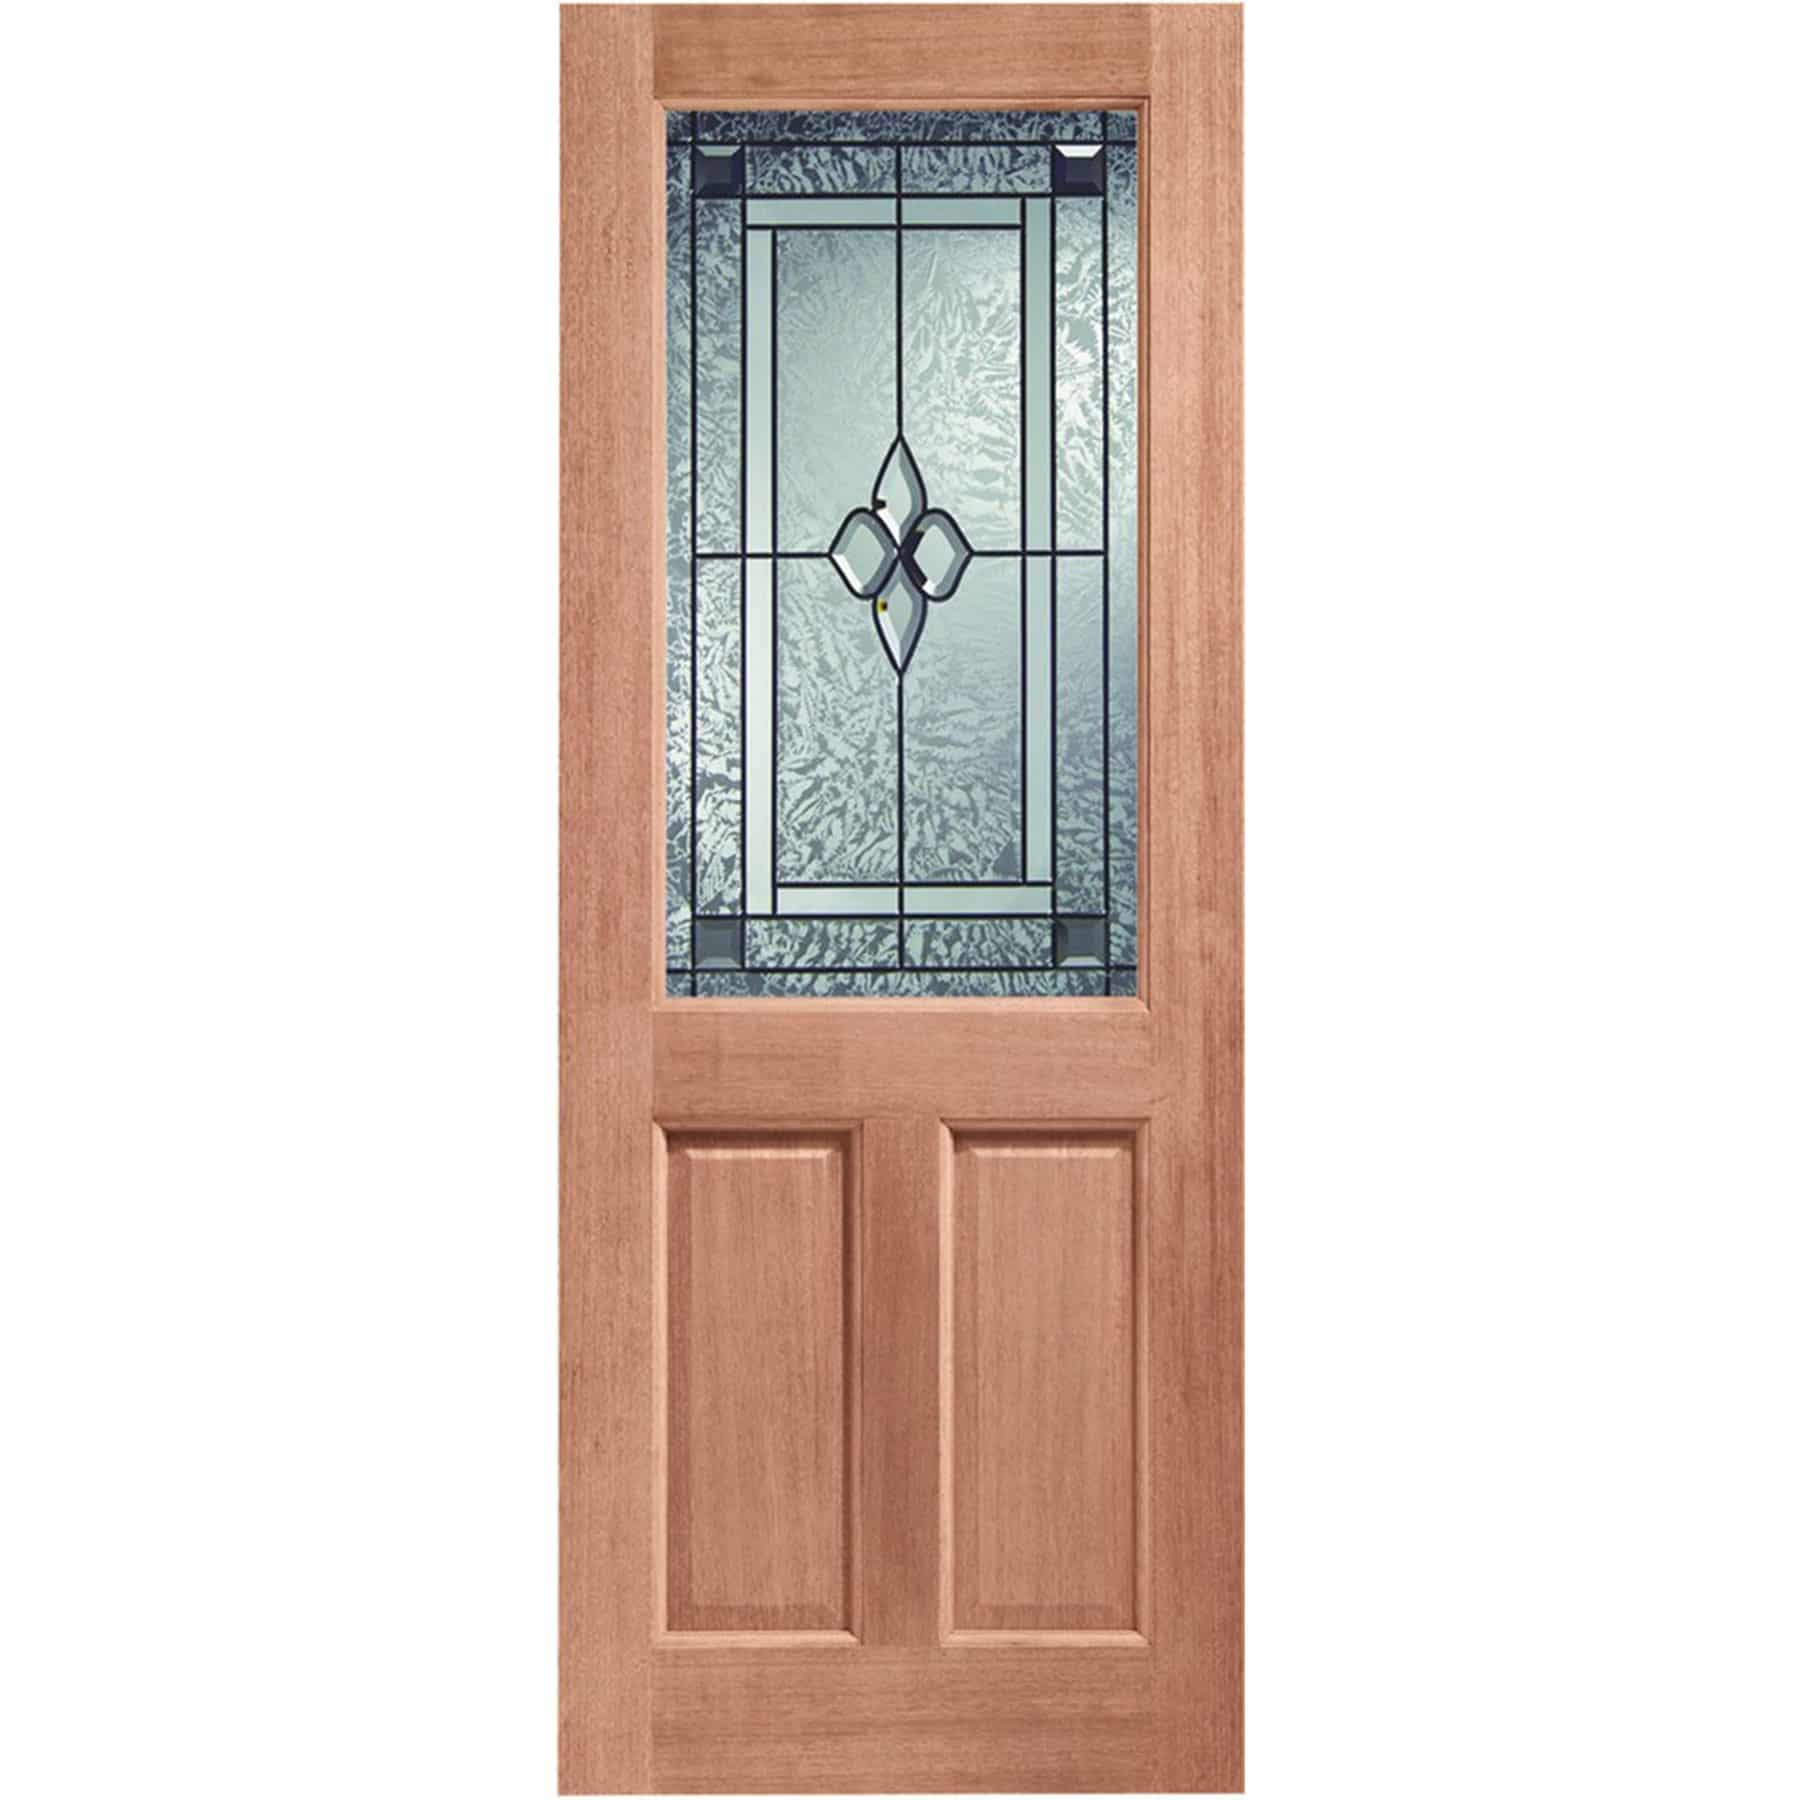 2xg double glazed external hardwood door m t with for Hardwood entrance doors